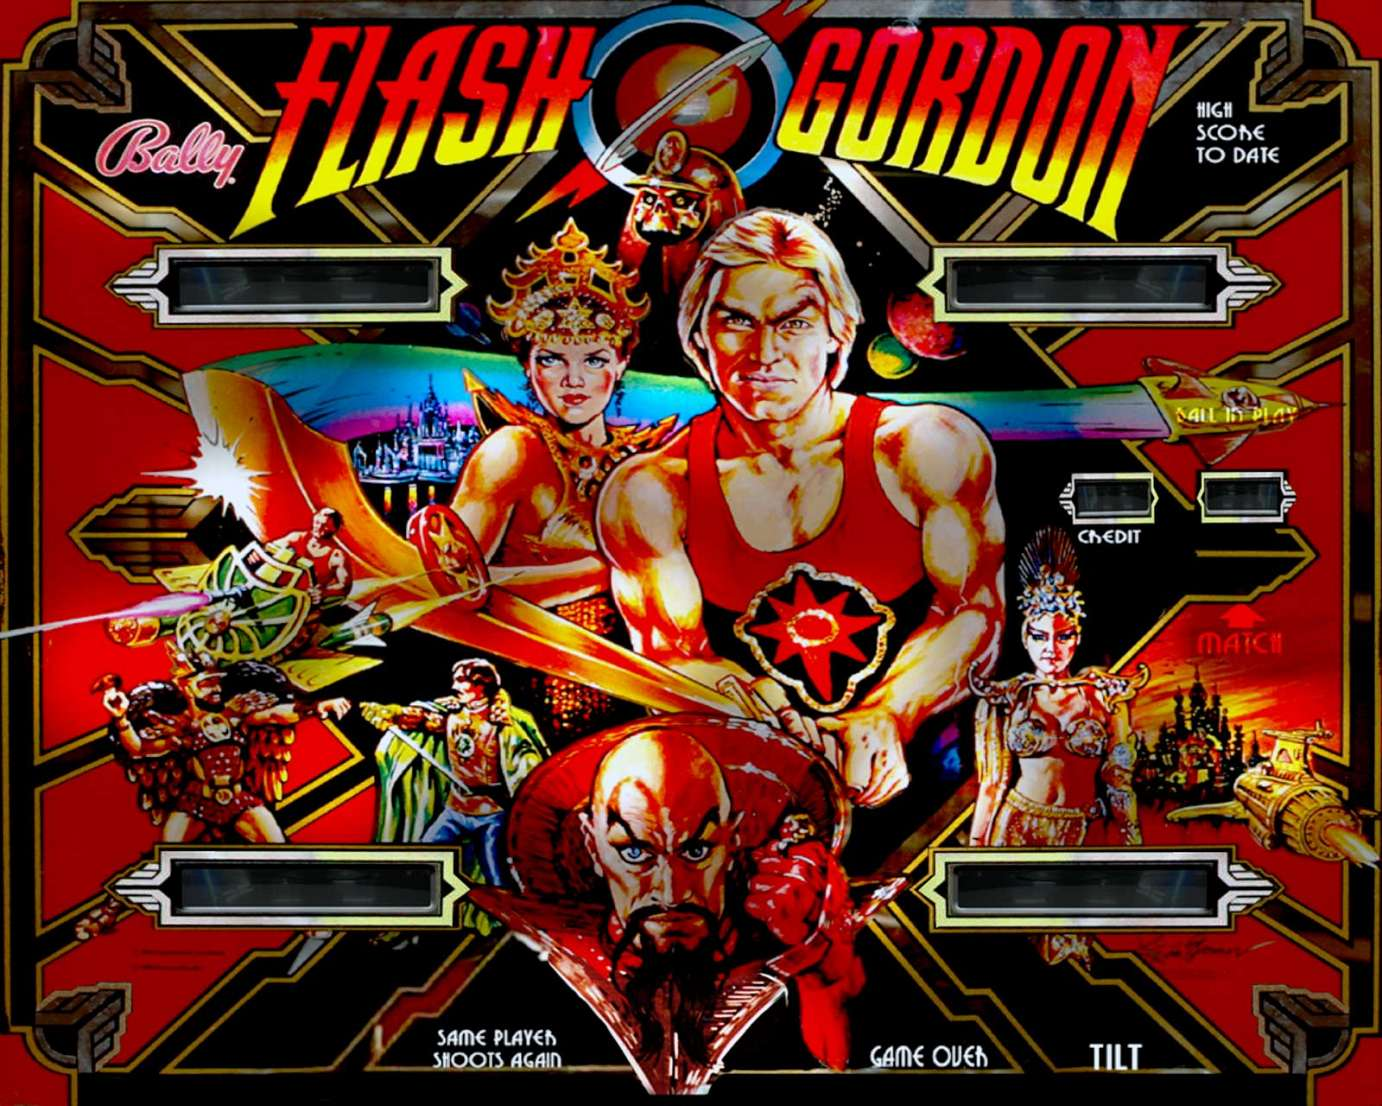 Flash-Gordon-_Bally-1981_bg.jpg